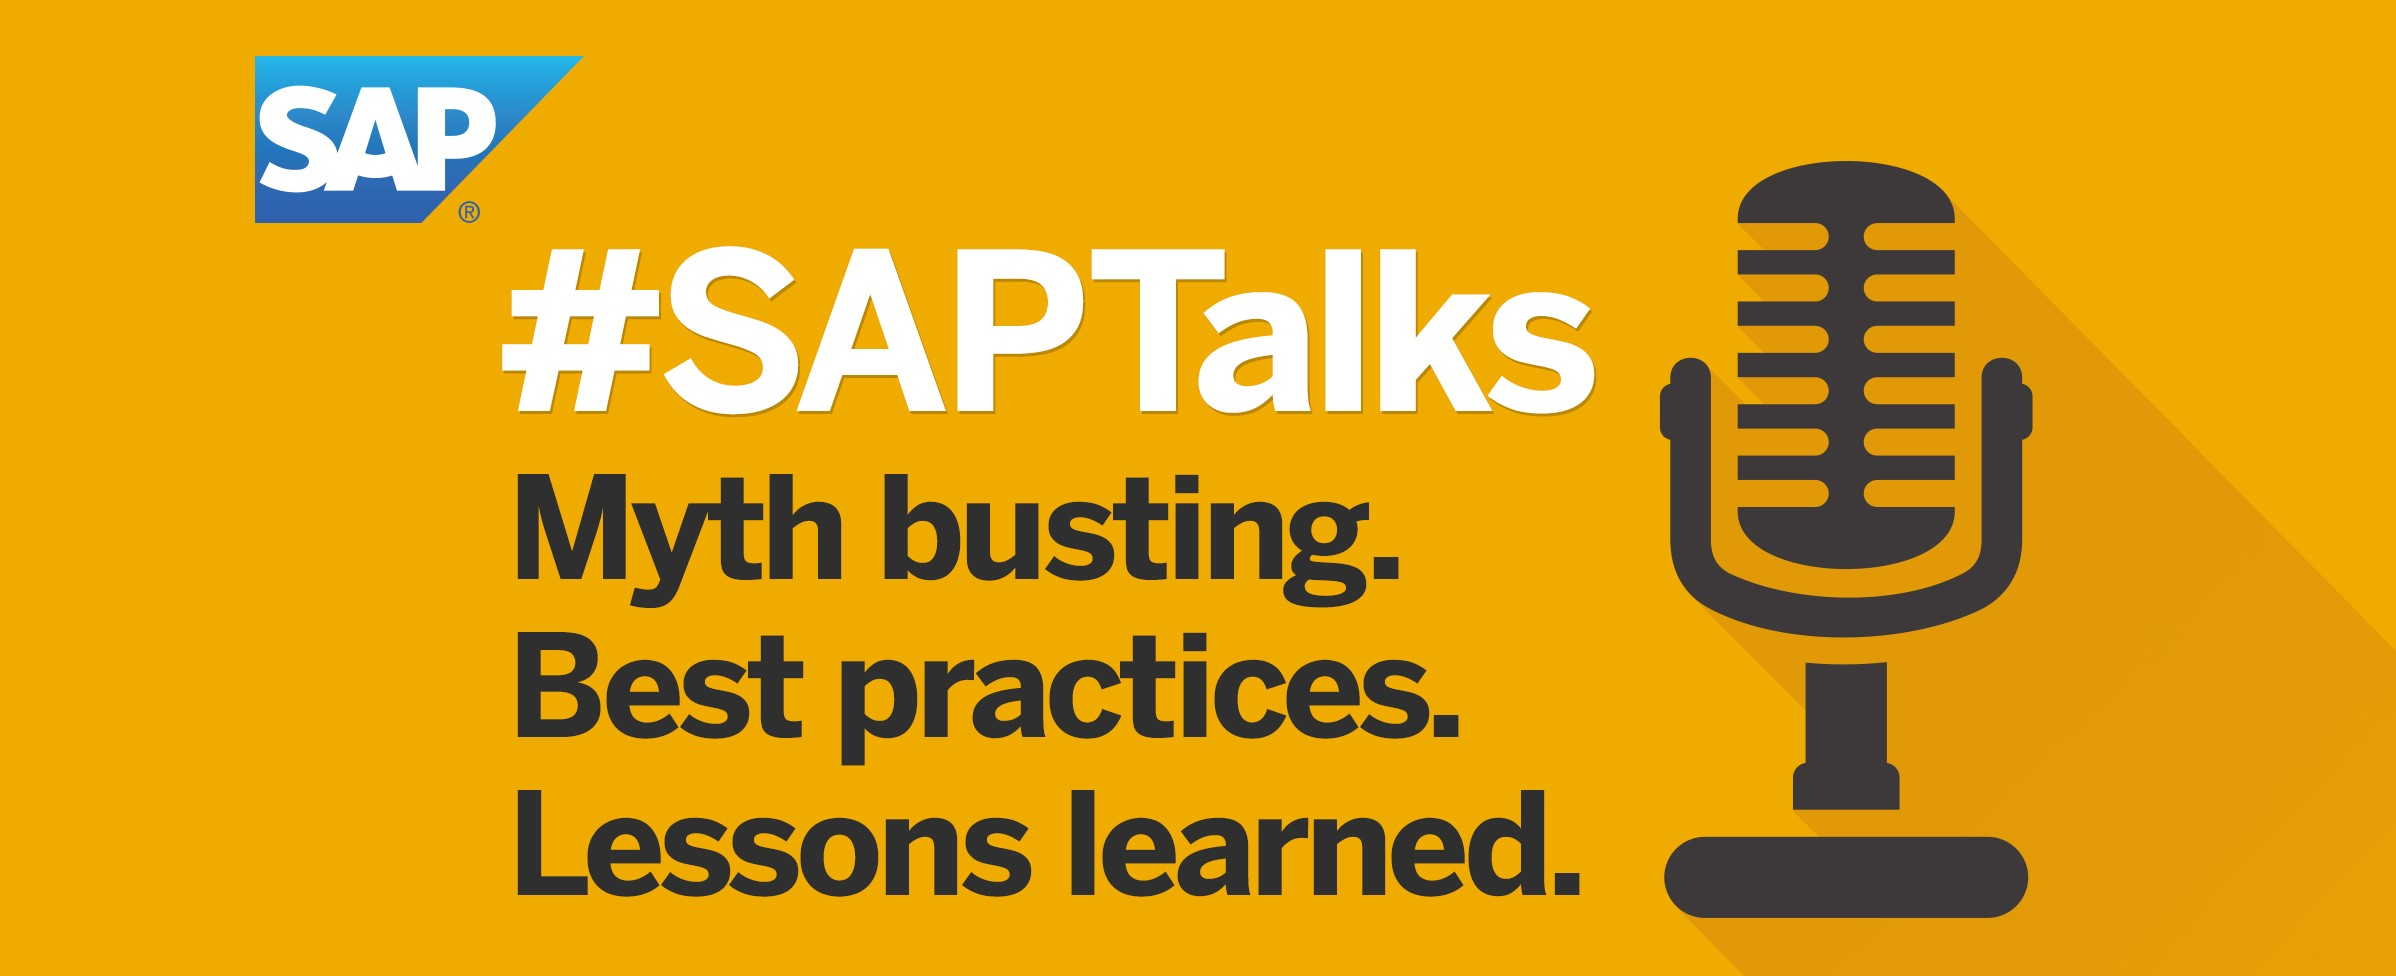 SAP_Talks_Banner_2.jpg